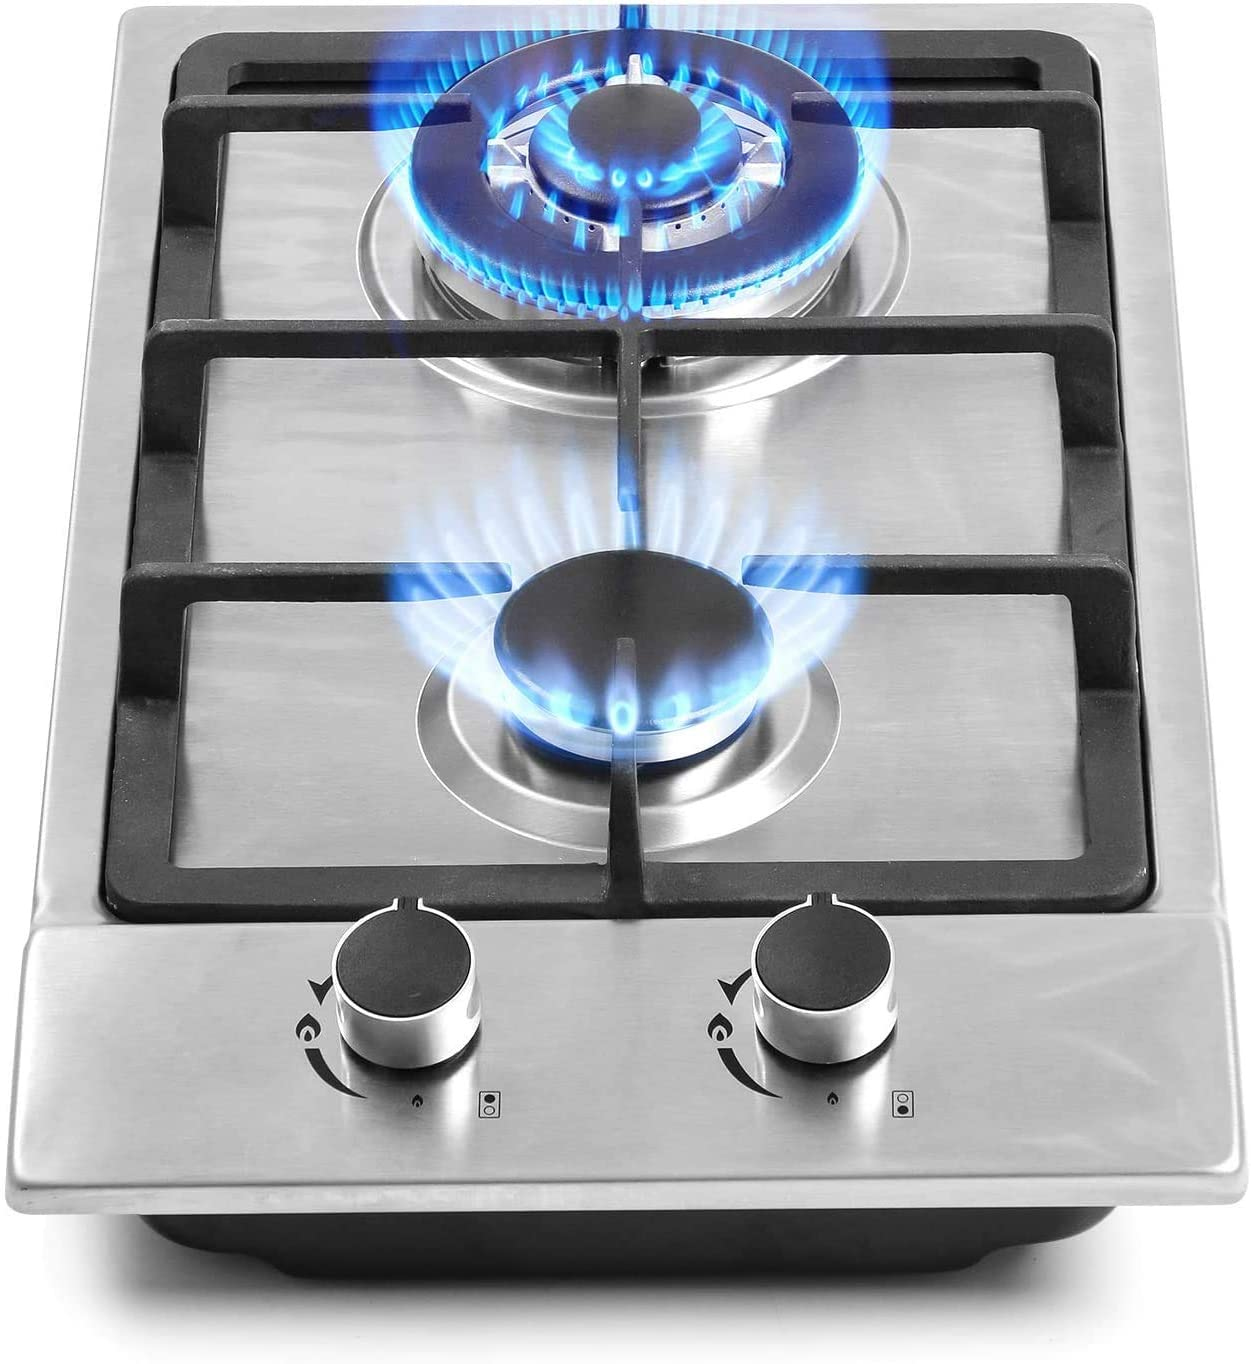 Gas stove otherwise electric stove